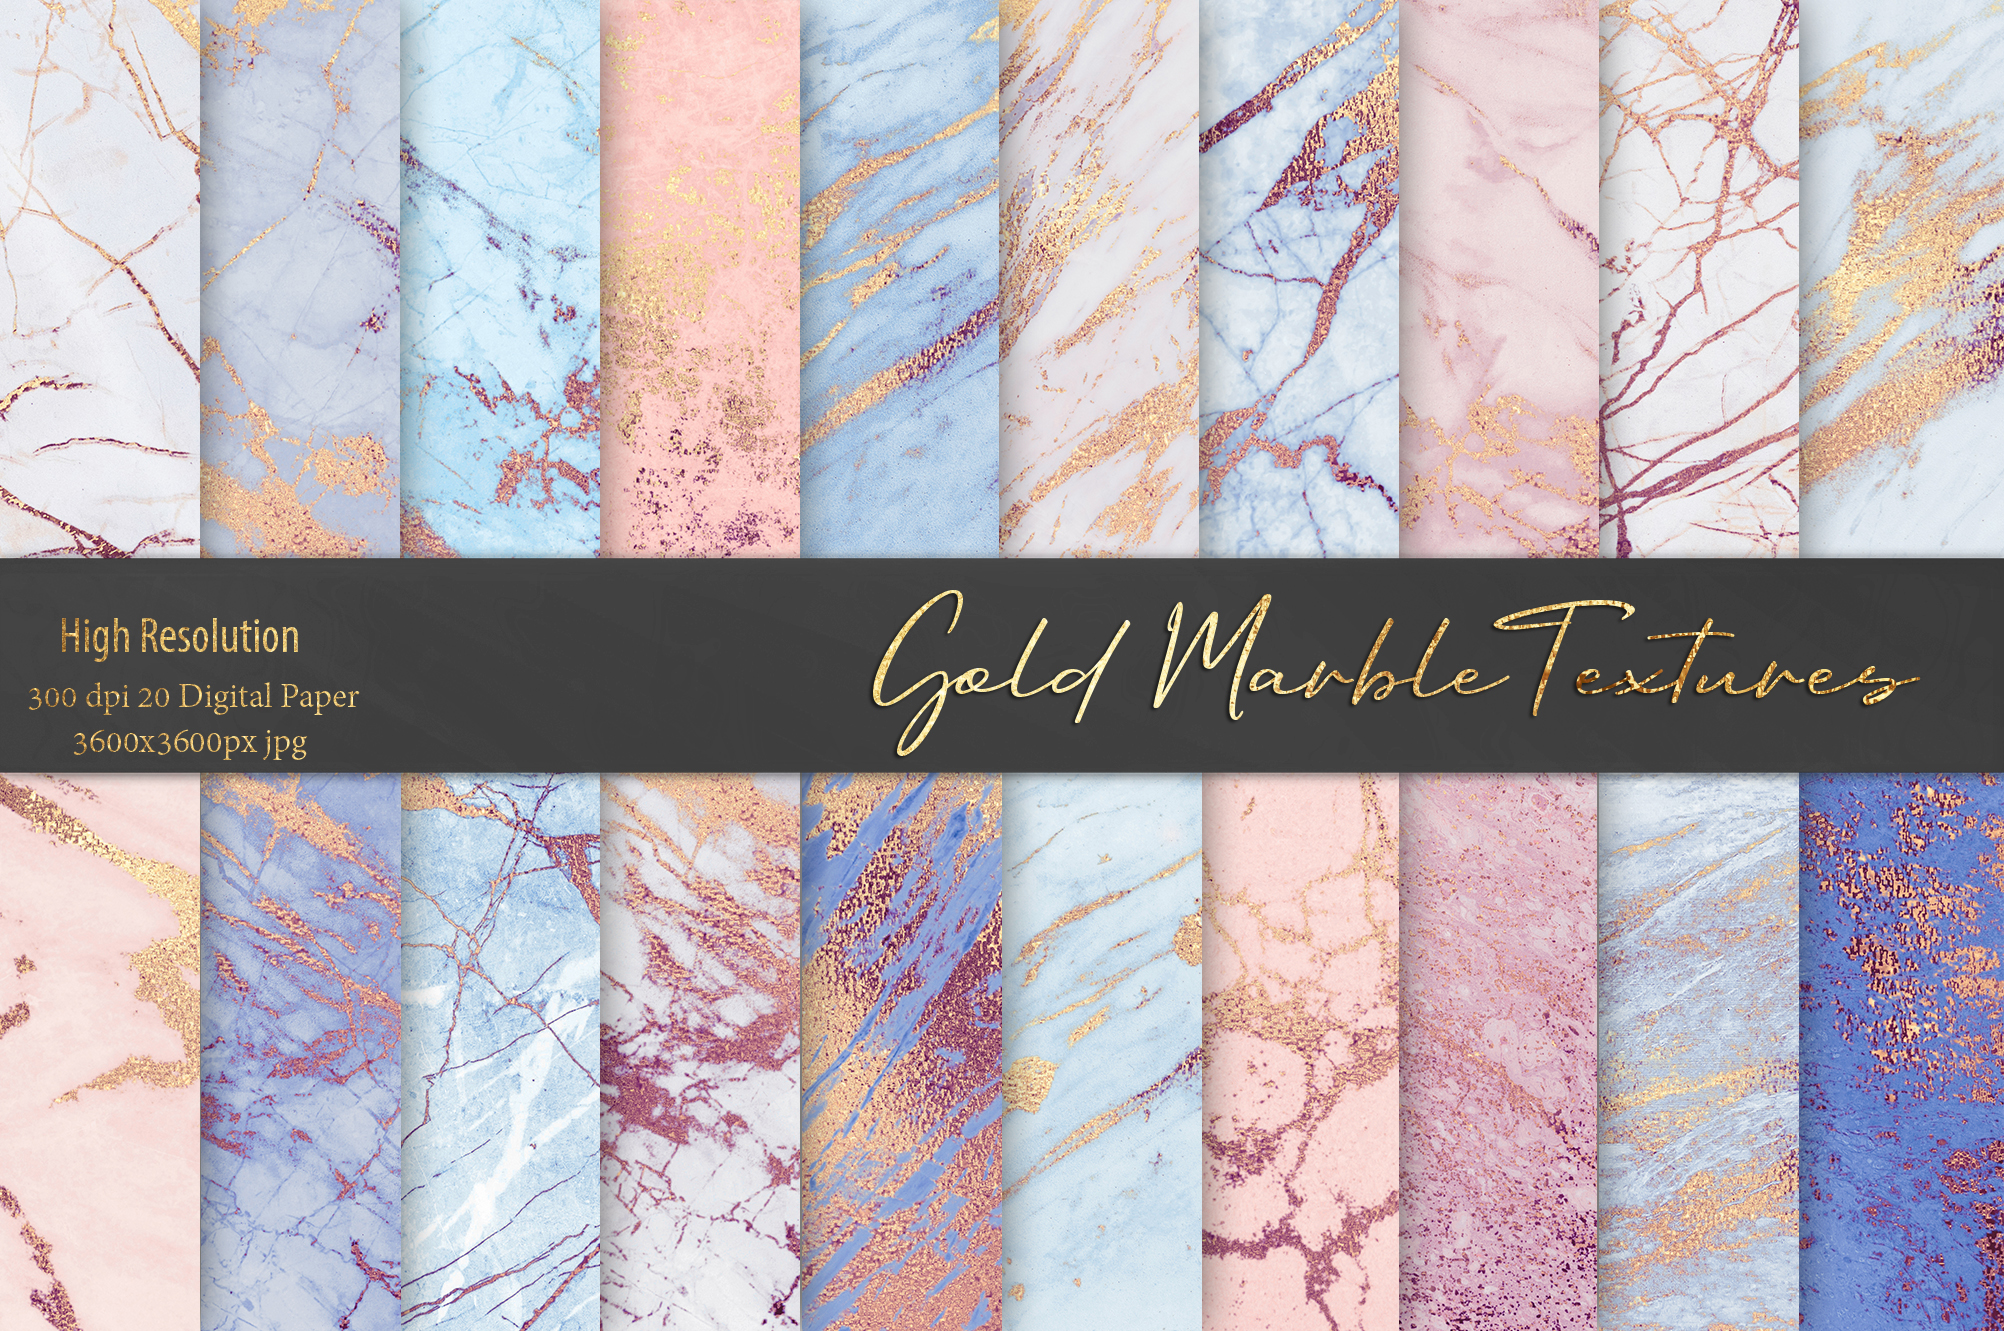 Rose and Blue Gold Marble Textures example image 1